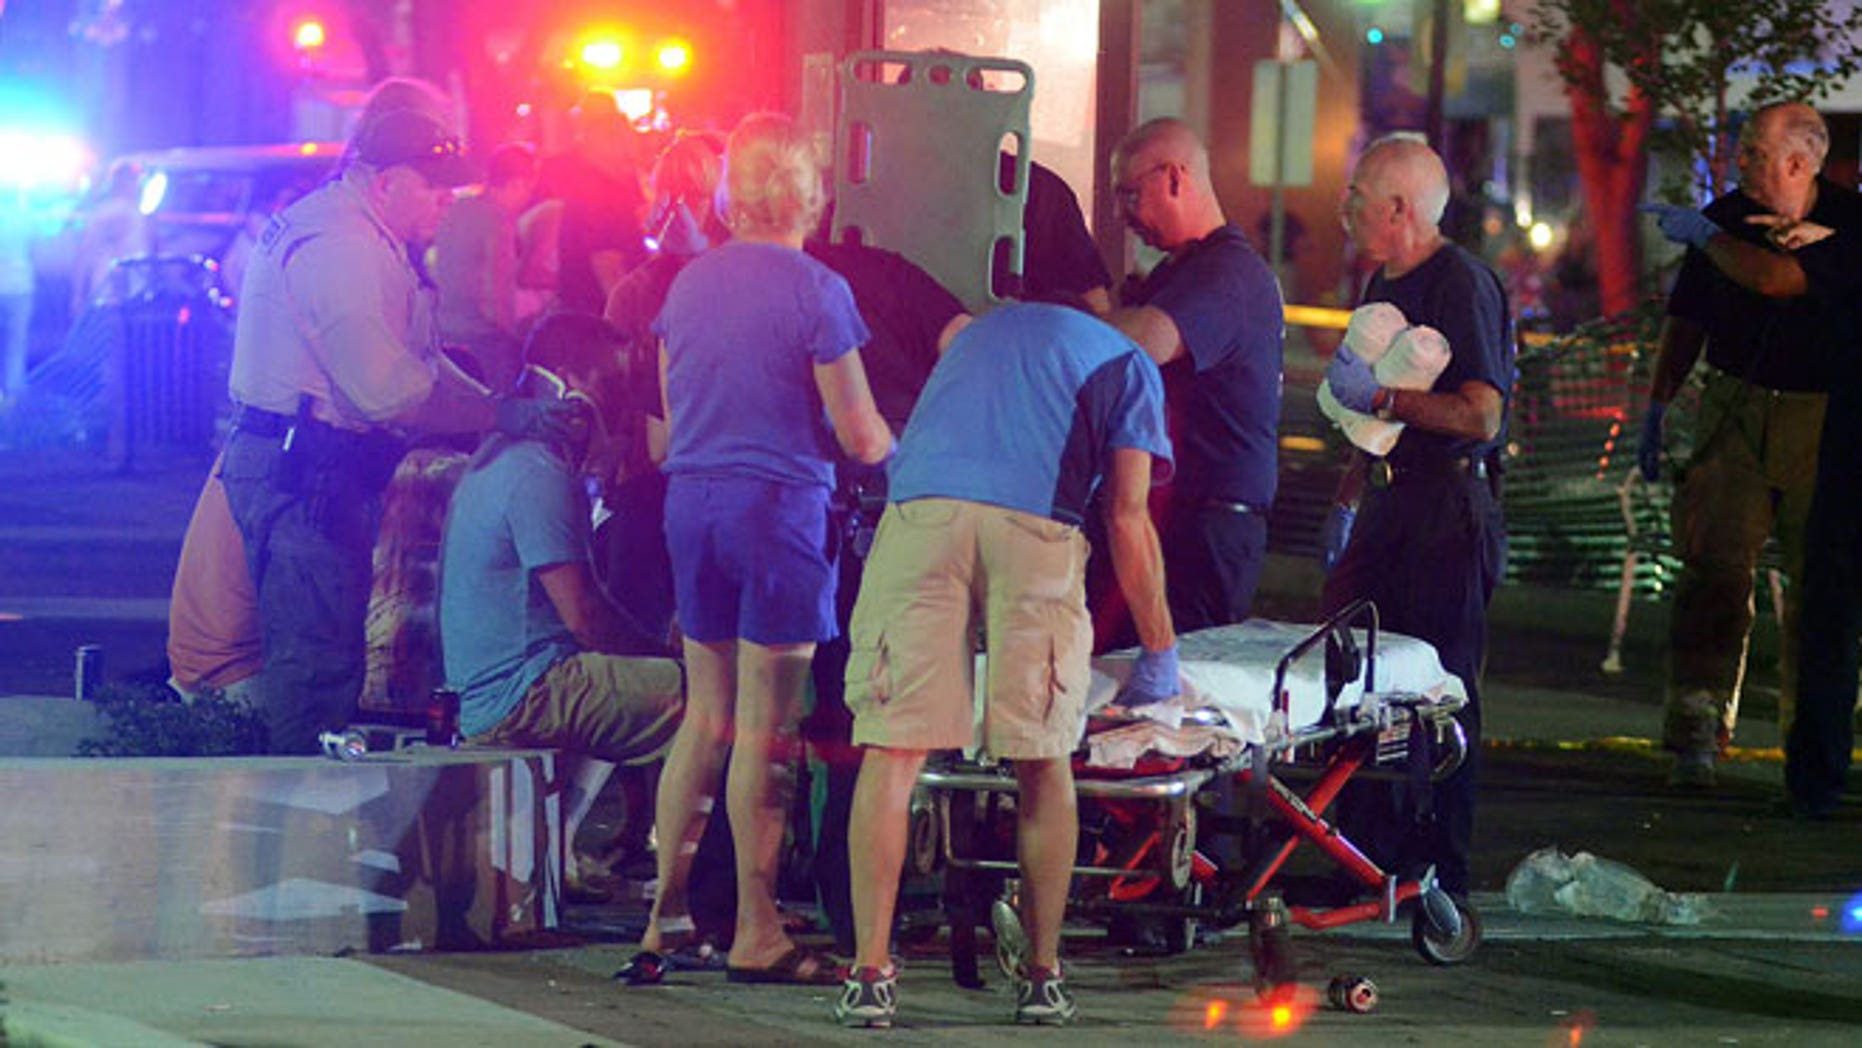 June 15, 2012: Emergency workers treat injured bystanders after a motorist drove into the Rally n Lima's Town Square in Lima, Ohio.